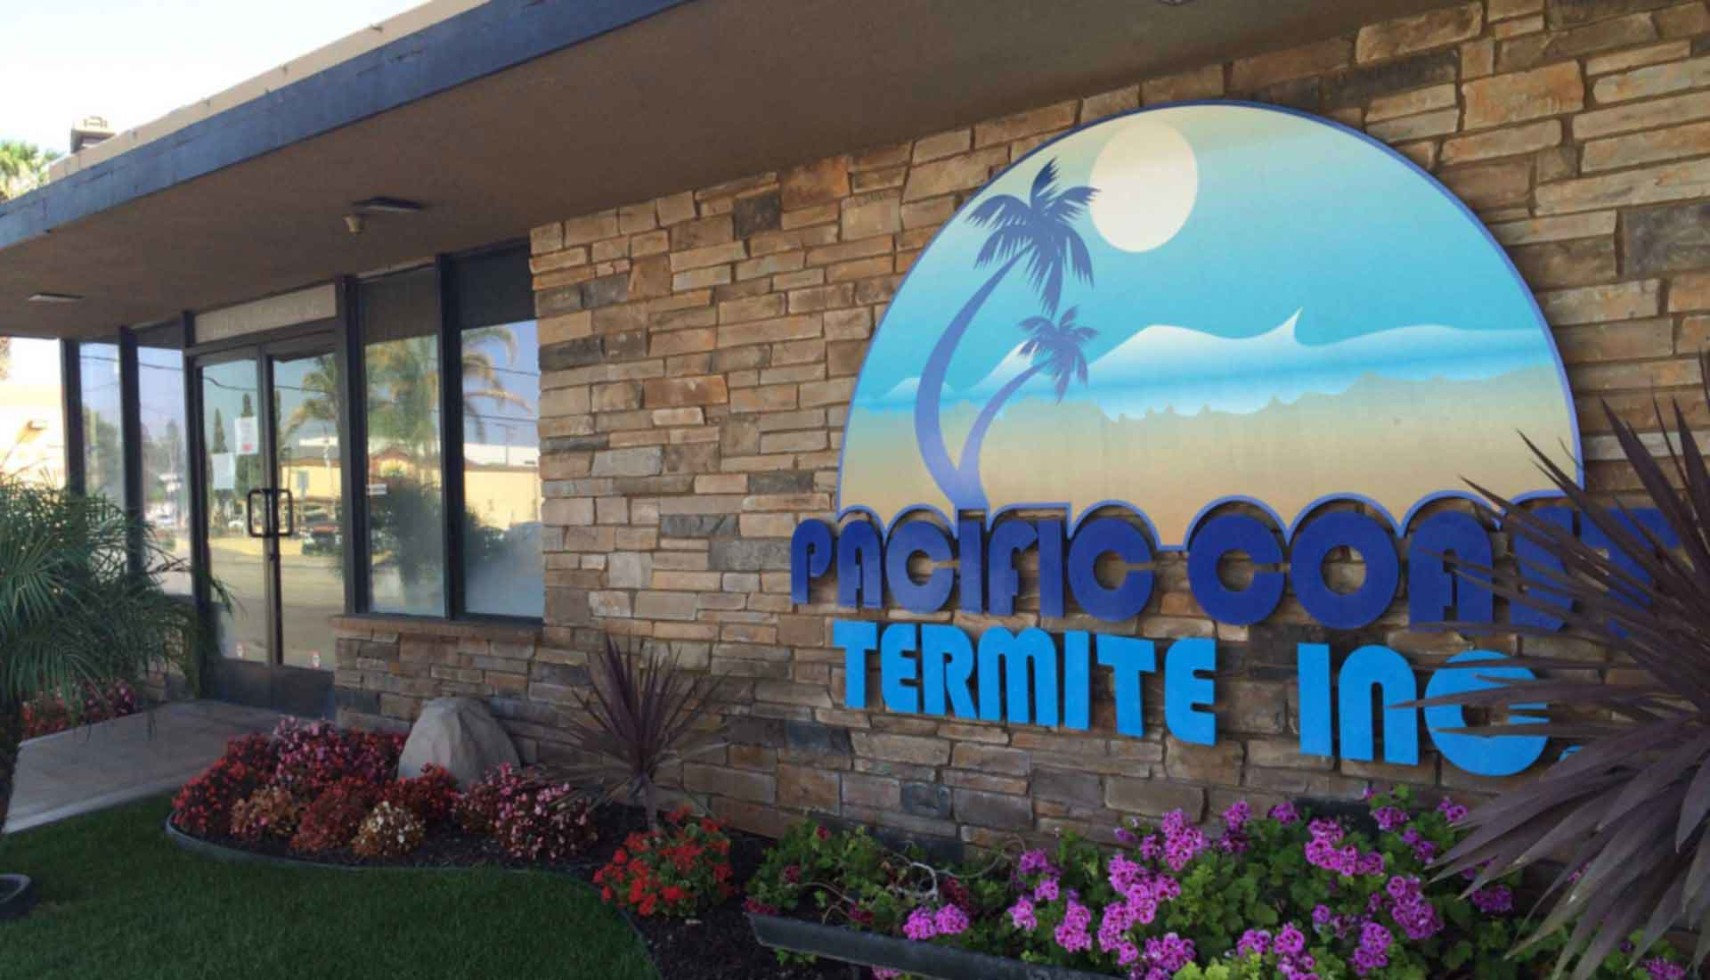 Pacific Coast Termite office sign